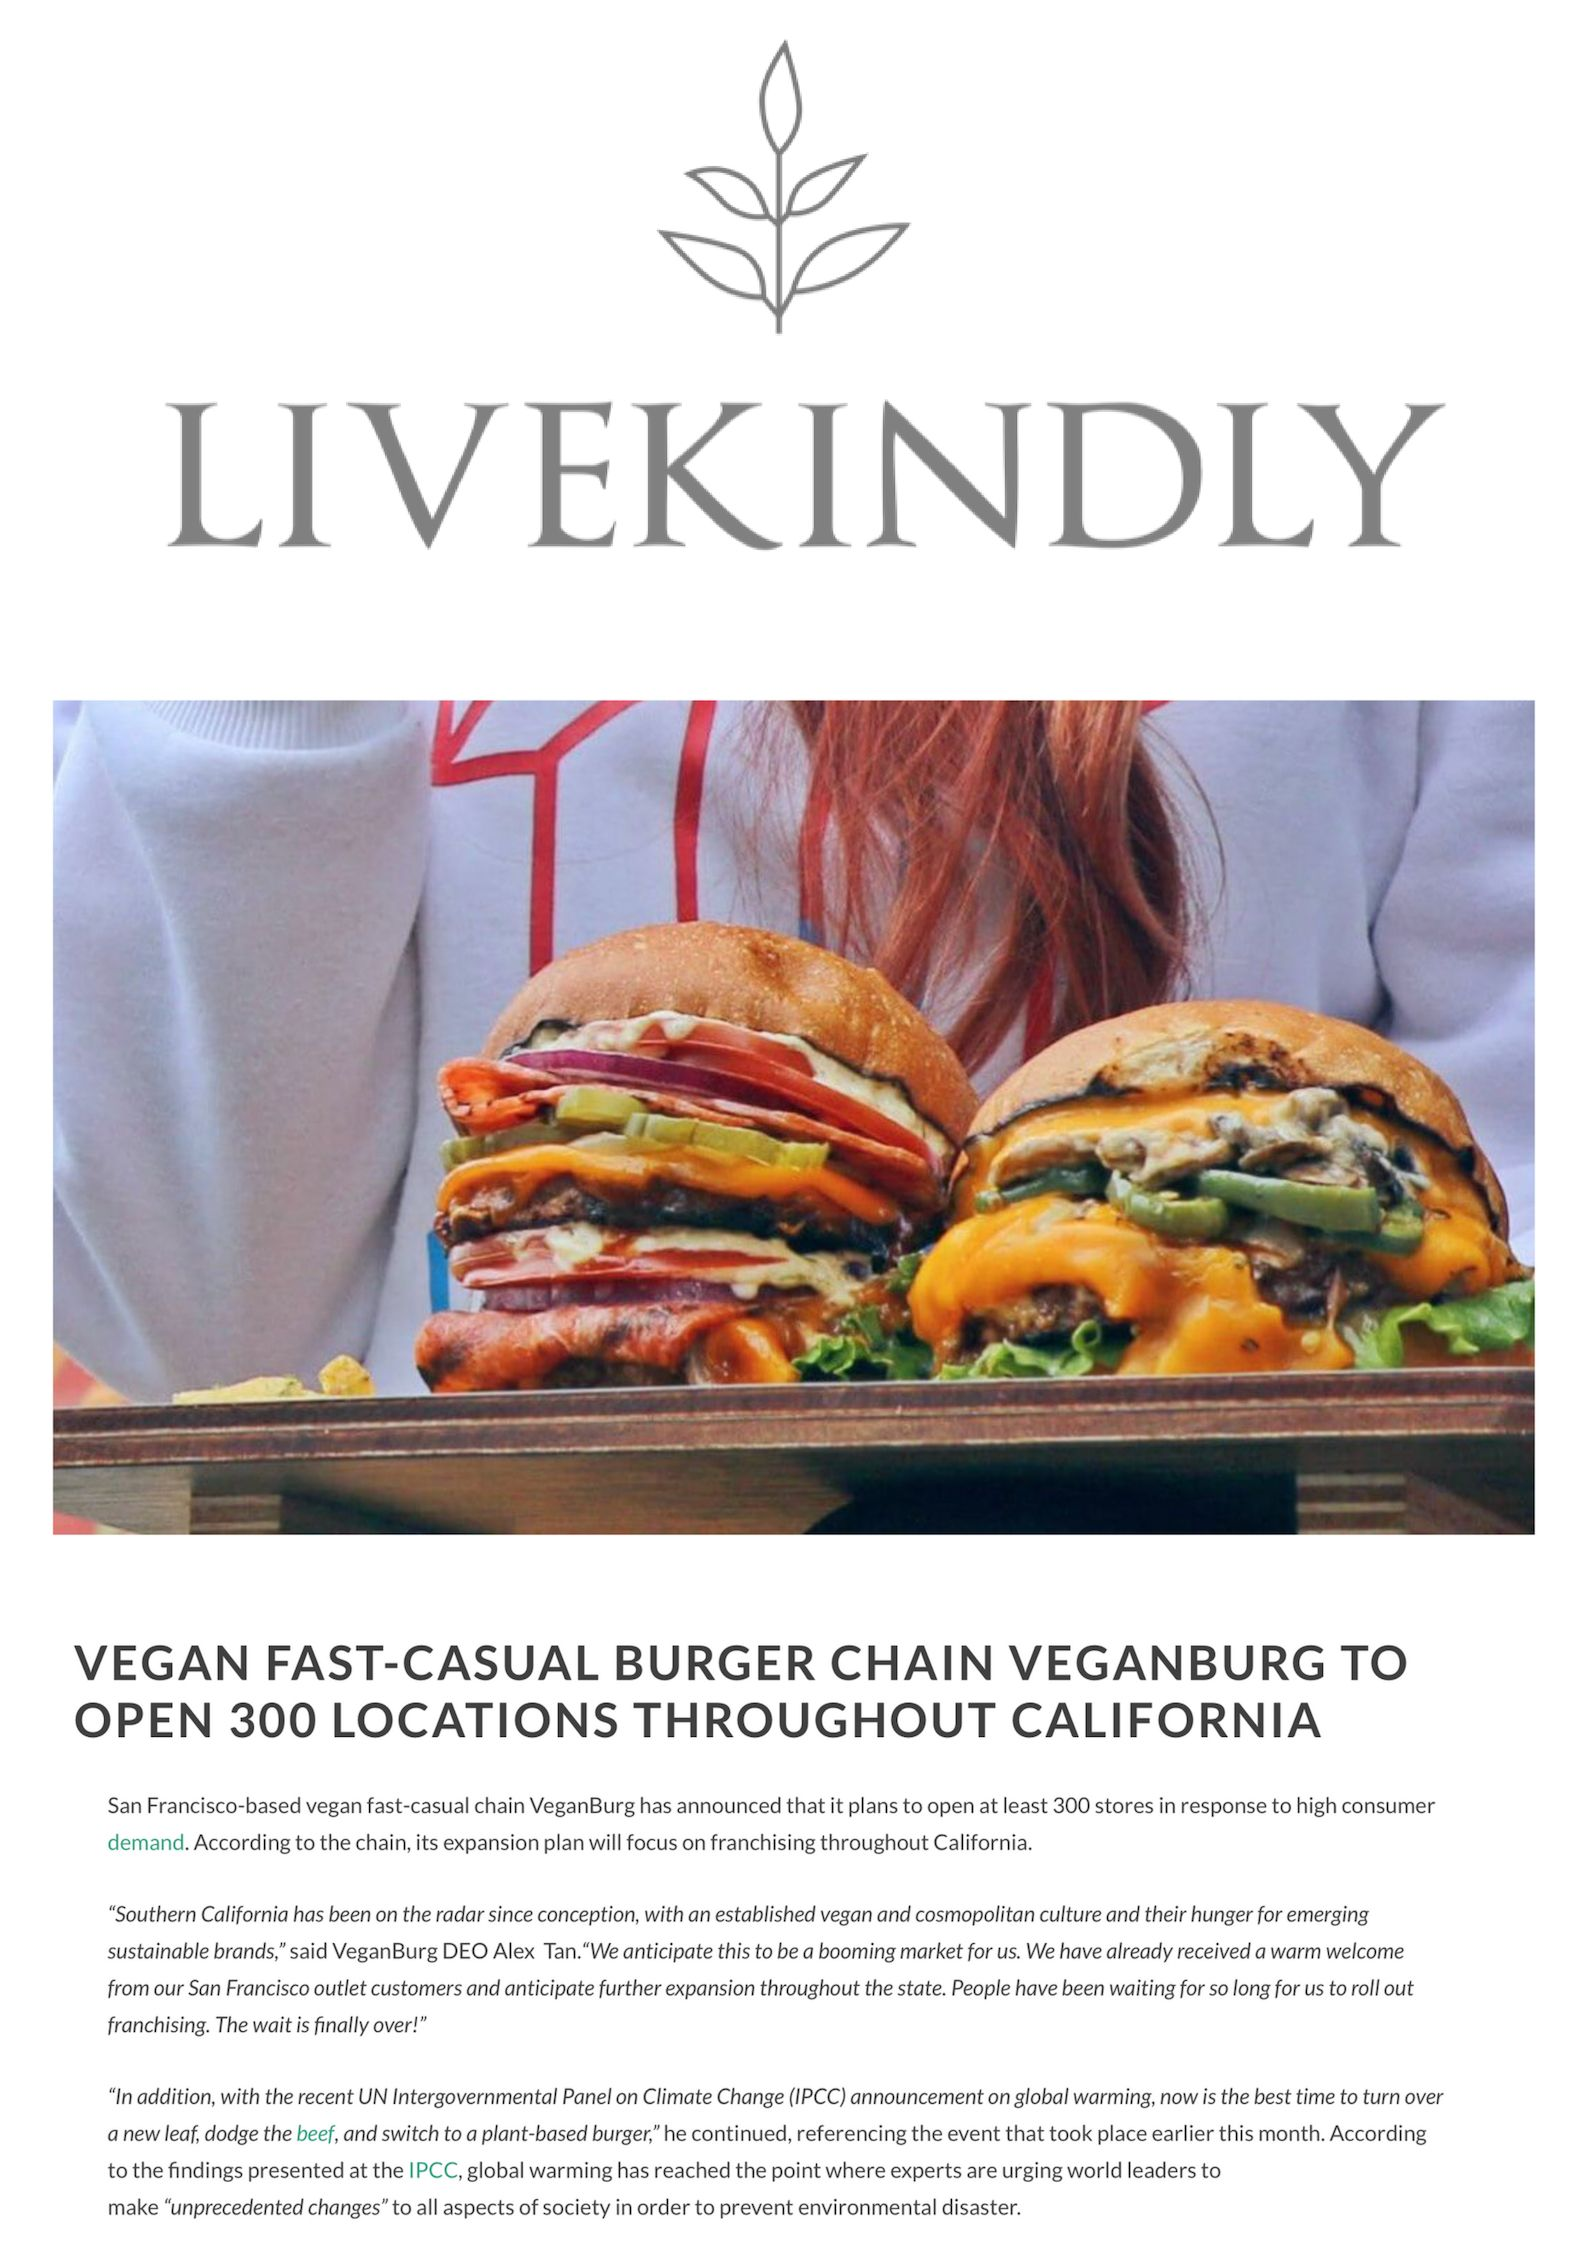 Vegan fast-casual burger chain VeganBurg has announced that it plans to open 300 franchised plant-based restaurants throughout California_.jpg